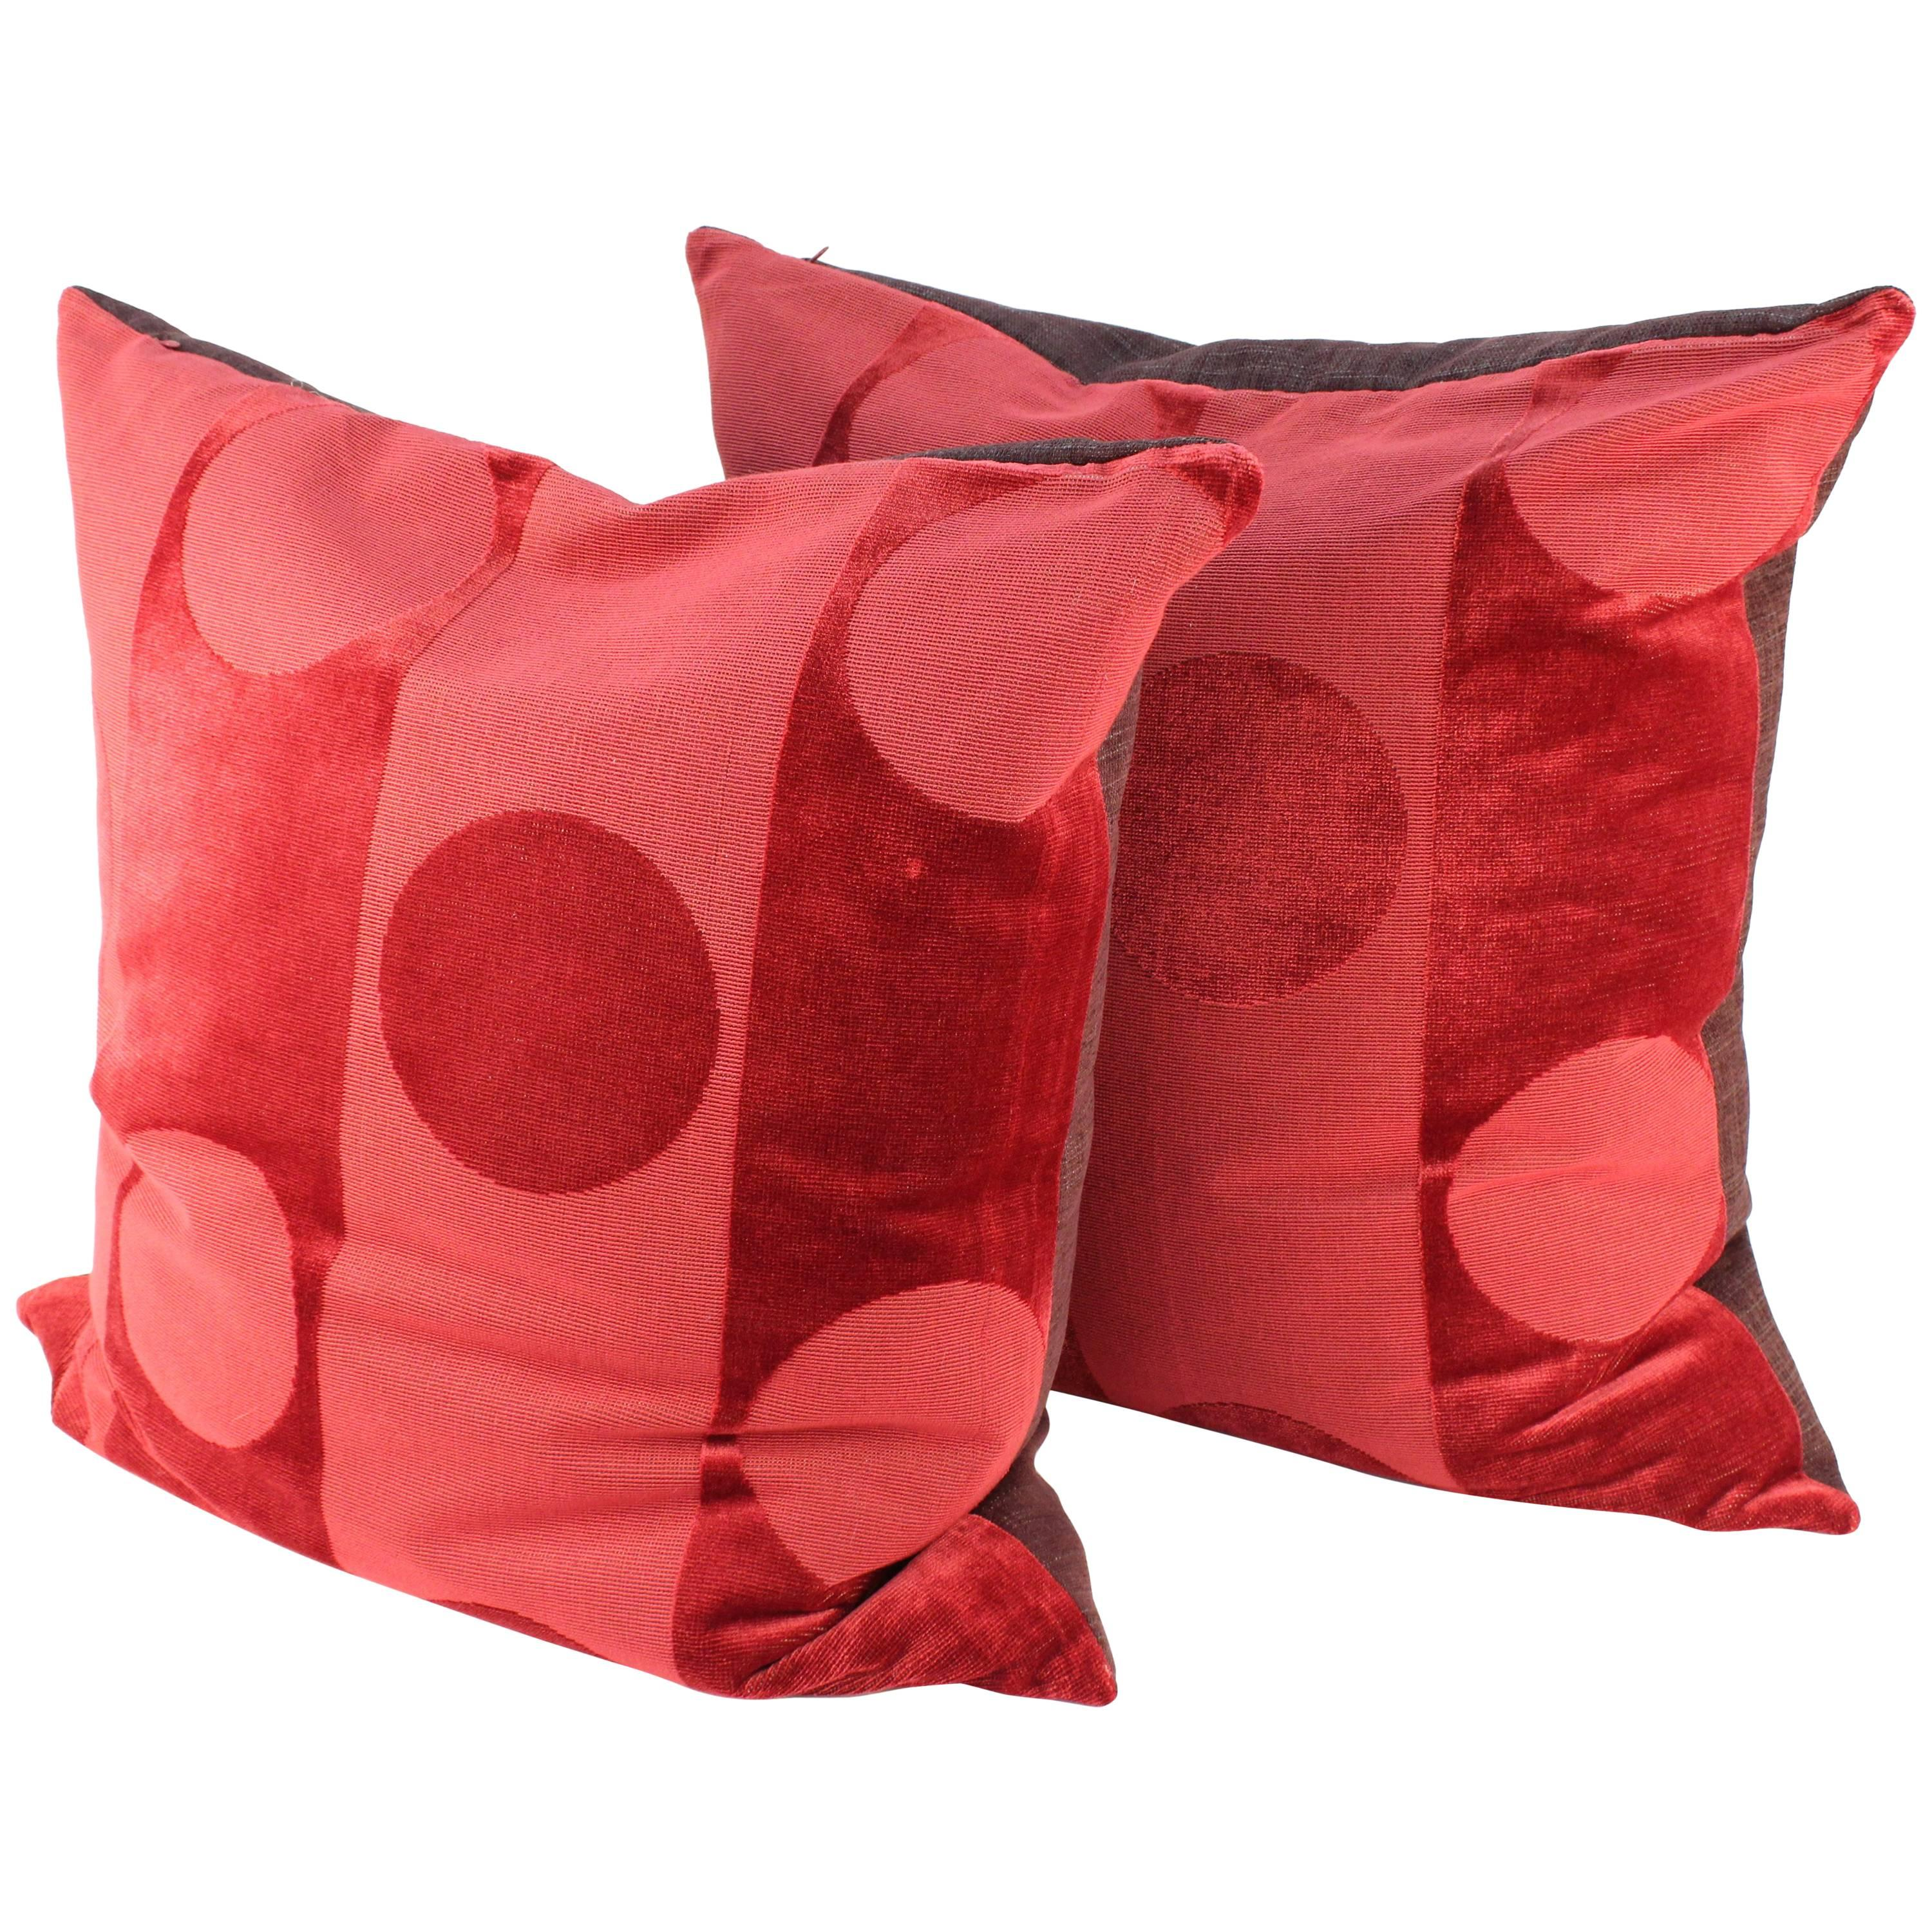 Superior Pair Of Pillows In Clarence House Fabric